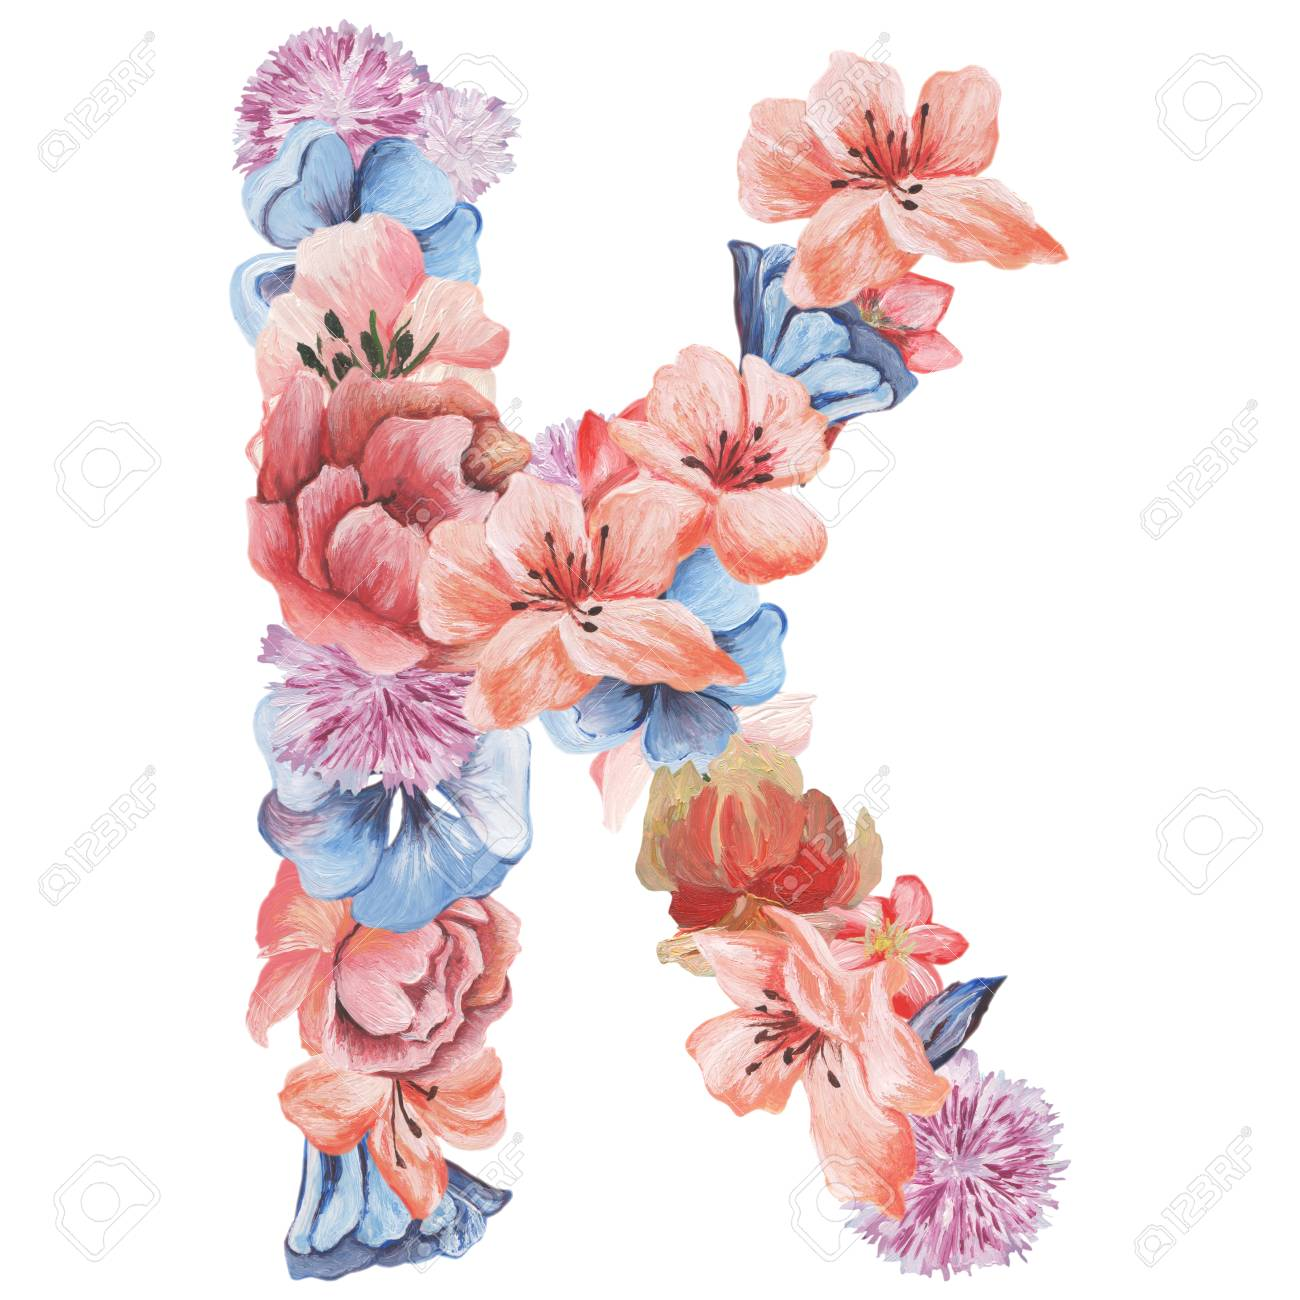 letter k of watercolor flowers isolated hand drawn on a white background wedding design